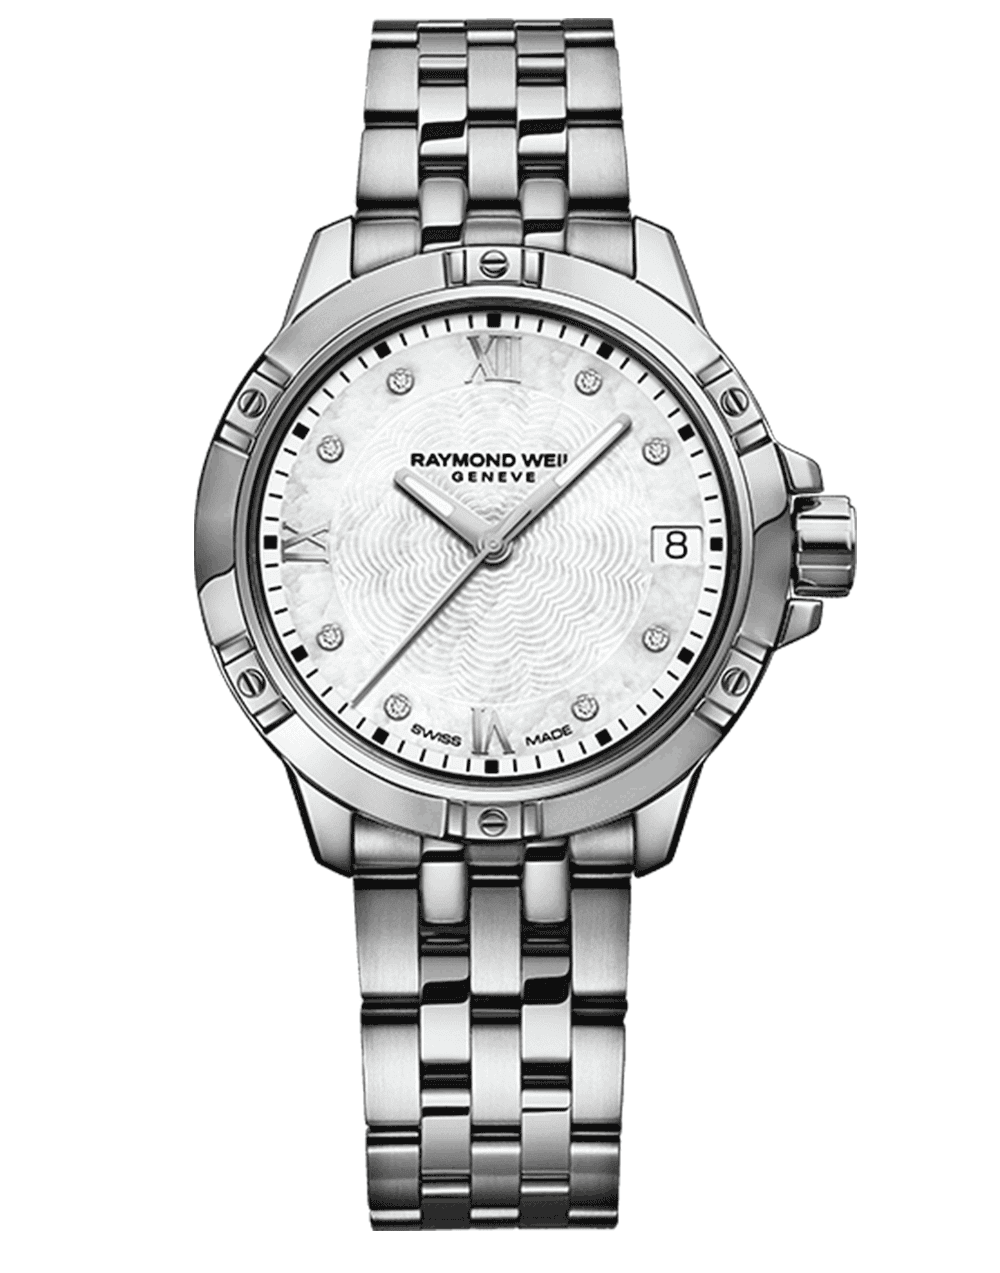 Tango Classic Ladies 8 Diamond Steel Quartz Watch, 30mm 5960-ST-00995